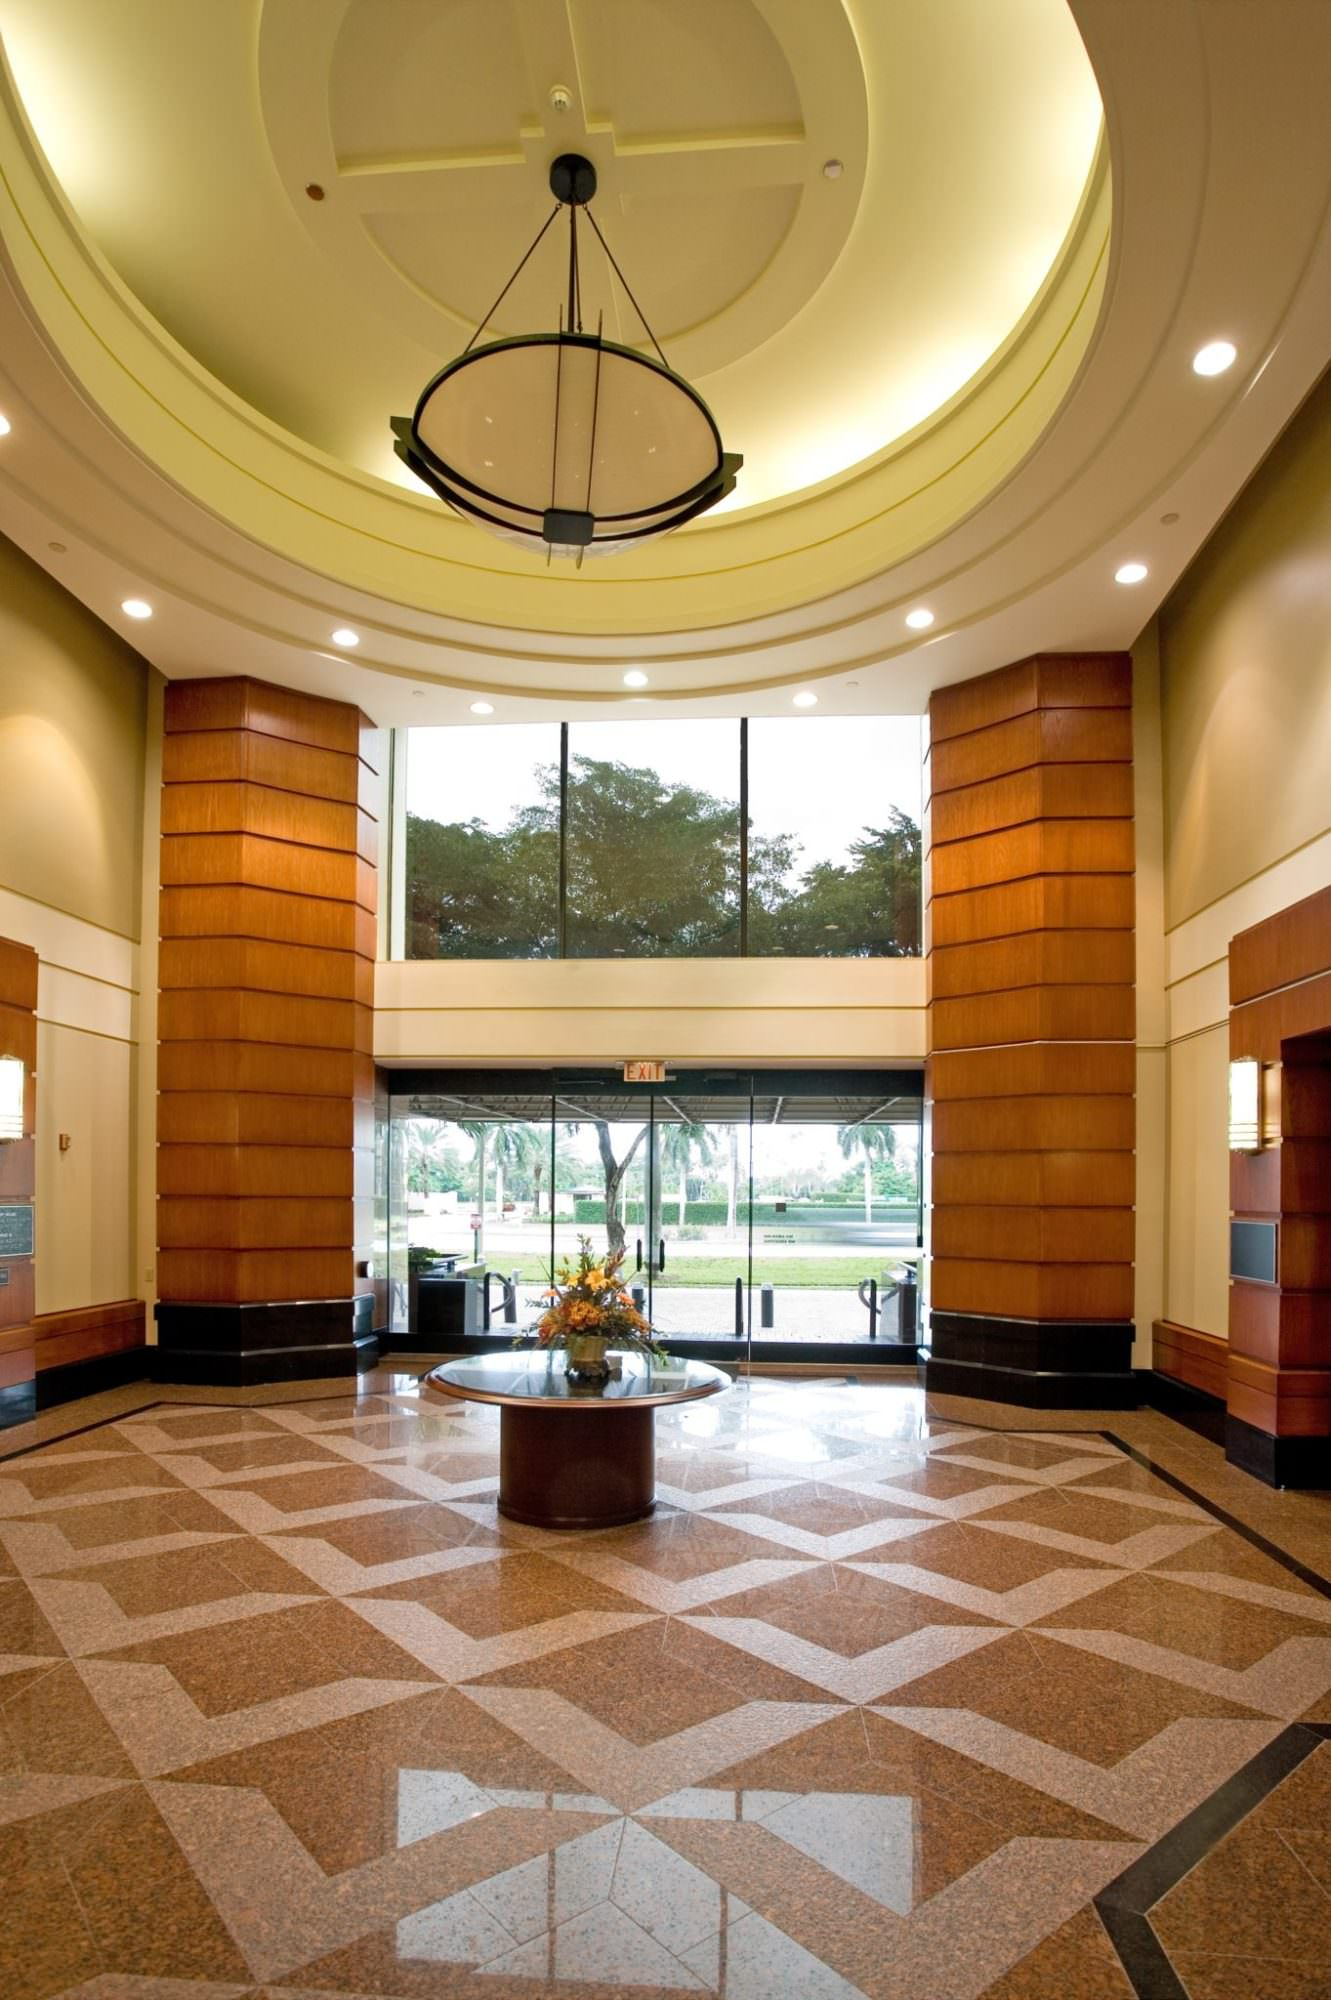 Oct. 17th, 2011 - West Palm Beach, Florida: The lobby of the Sabadell Building at 1645 Palm Beach Lakes Blvd. in West Palm Beach.